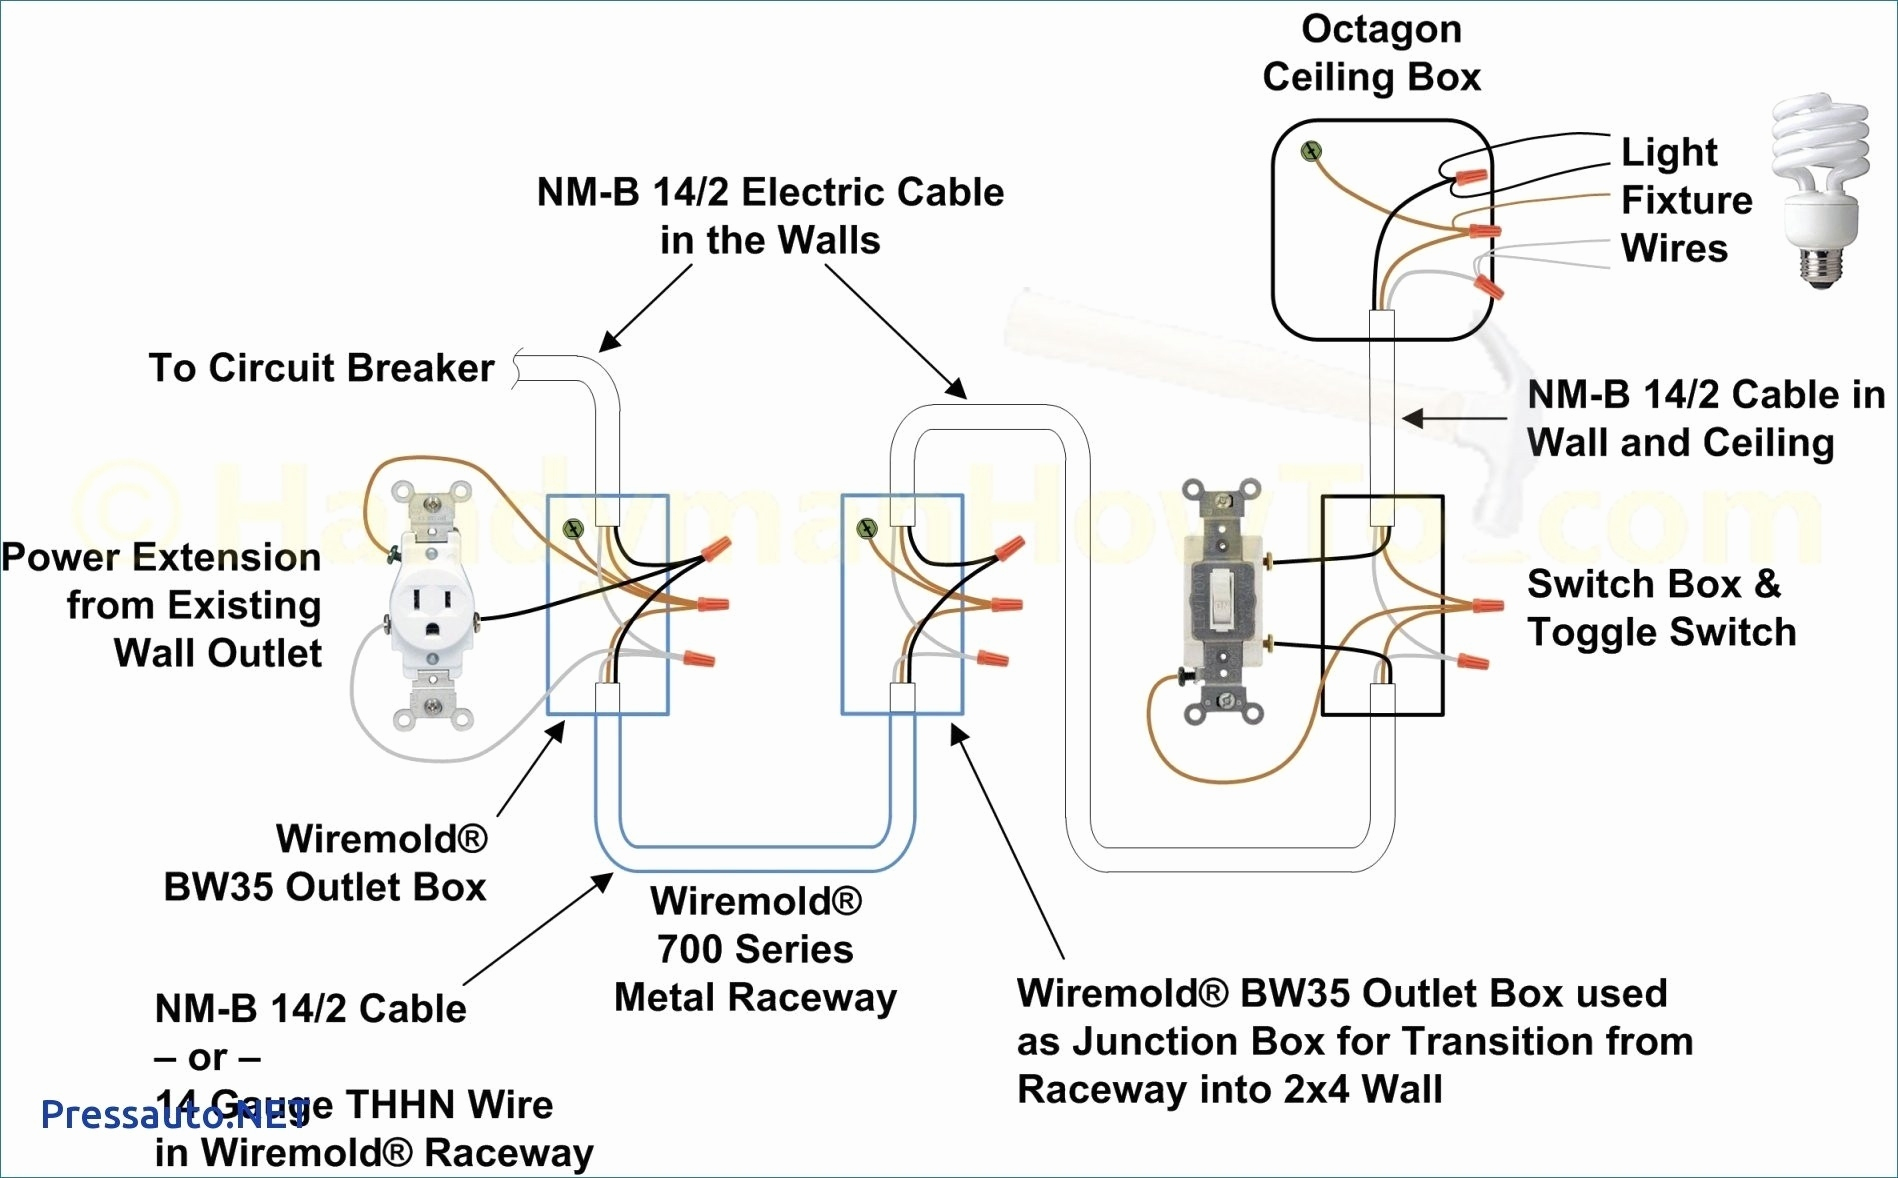 Leviton Smart Switch Wiring Diagram from 2020cadillac.com